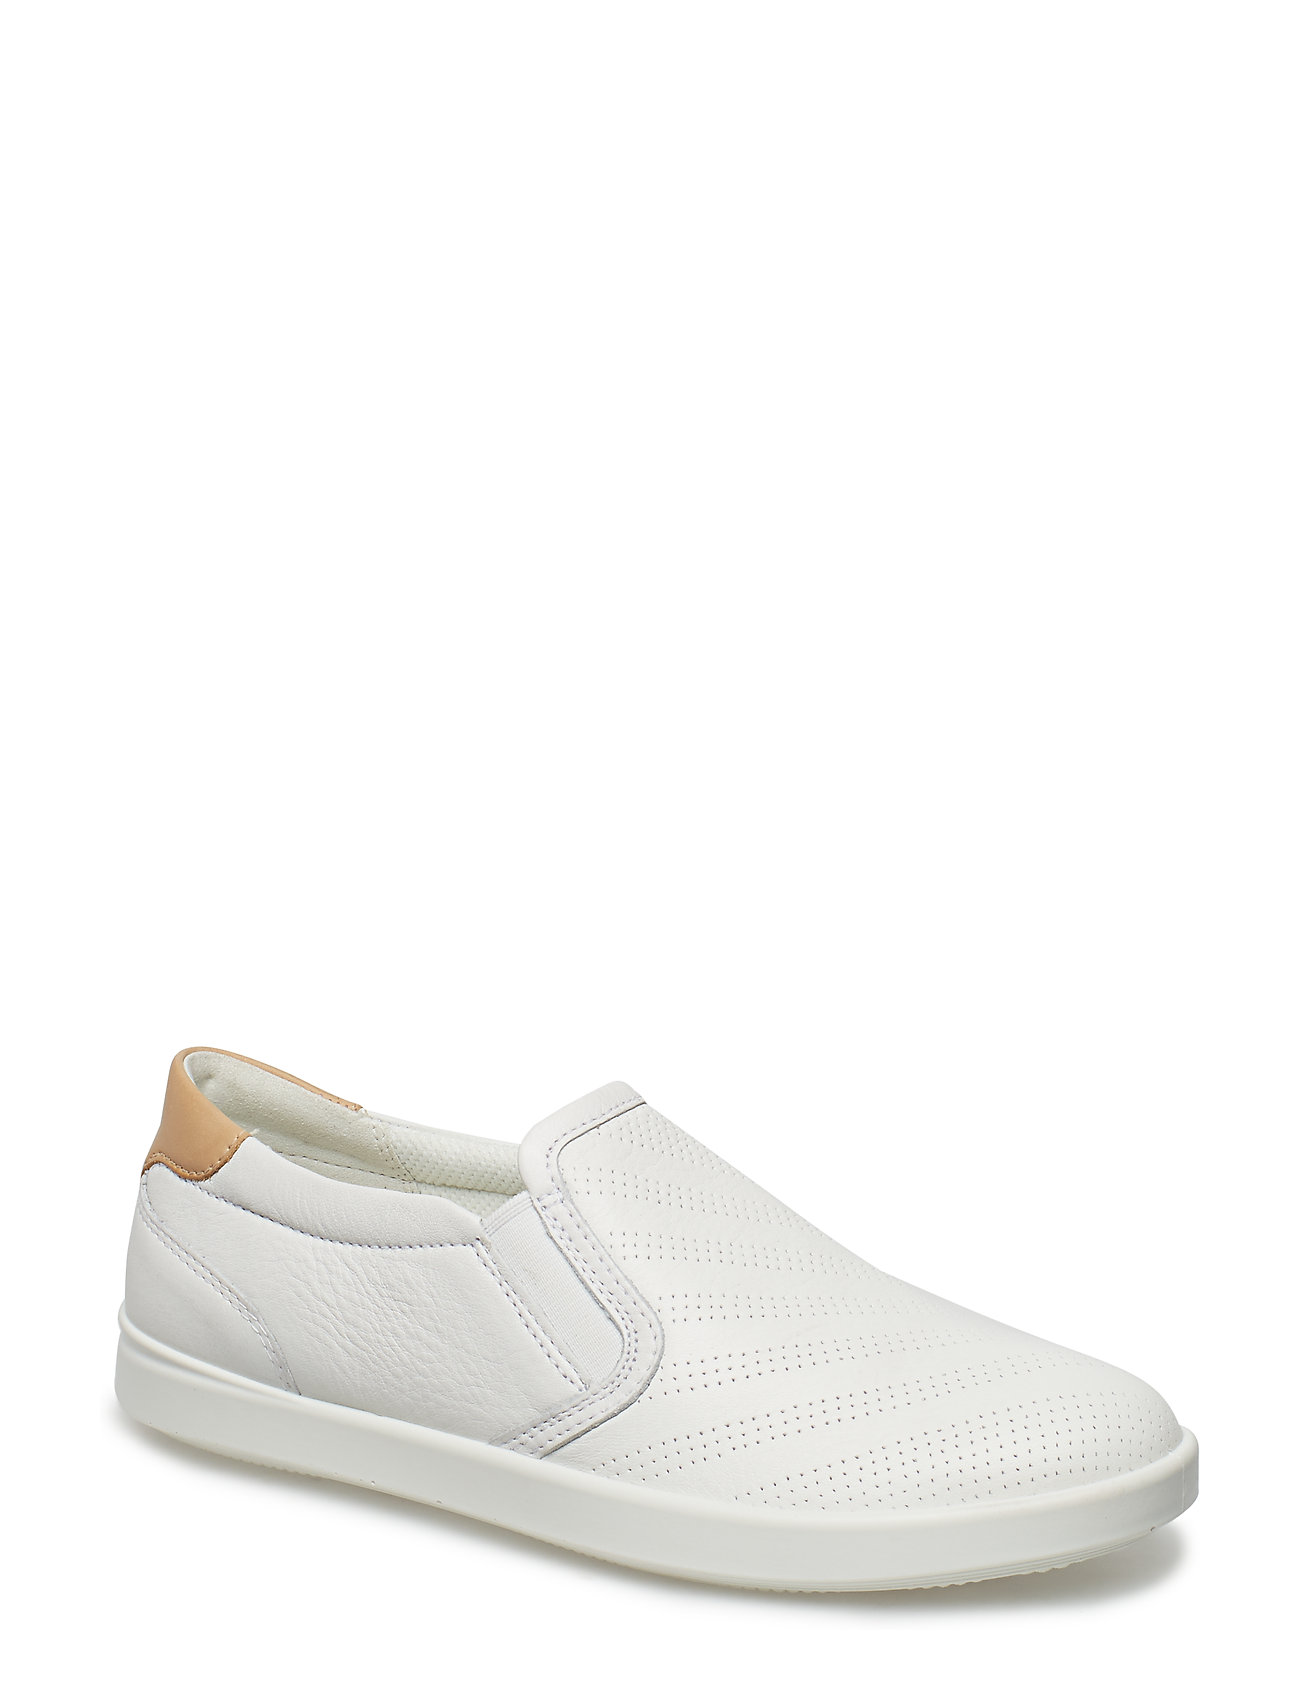 Image of Leisure Sneakers Hvid ECCO (3484634397)